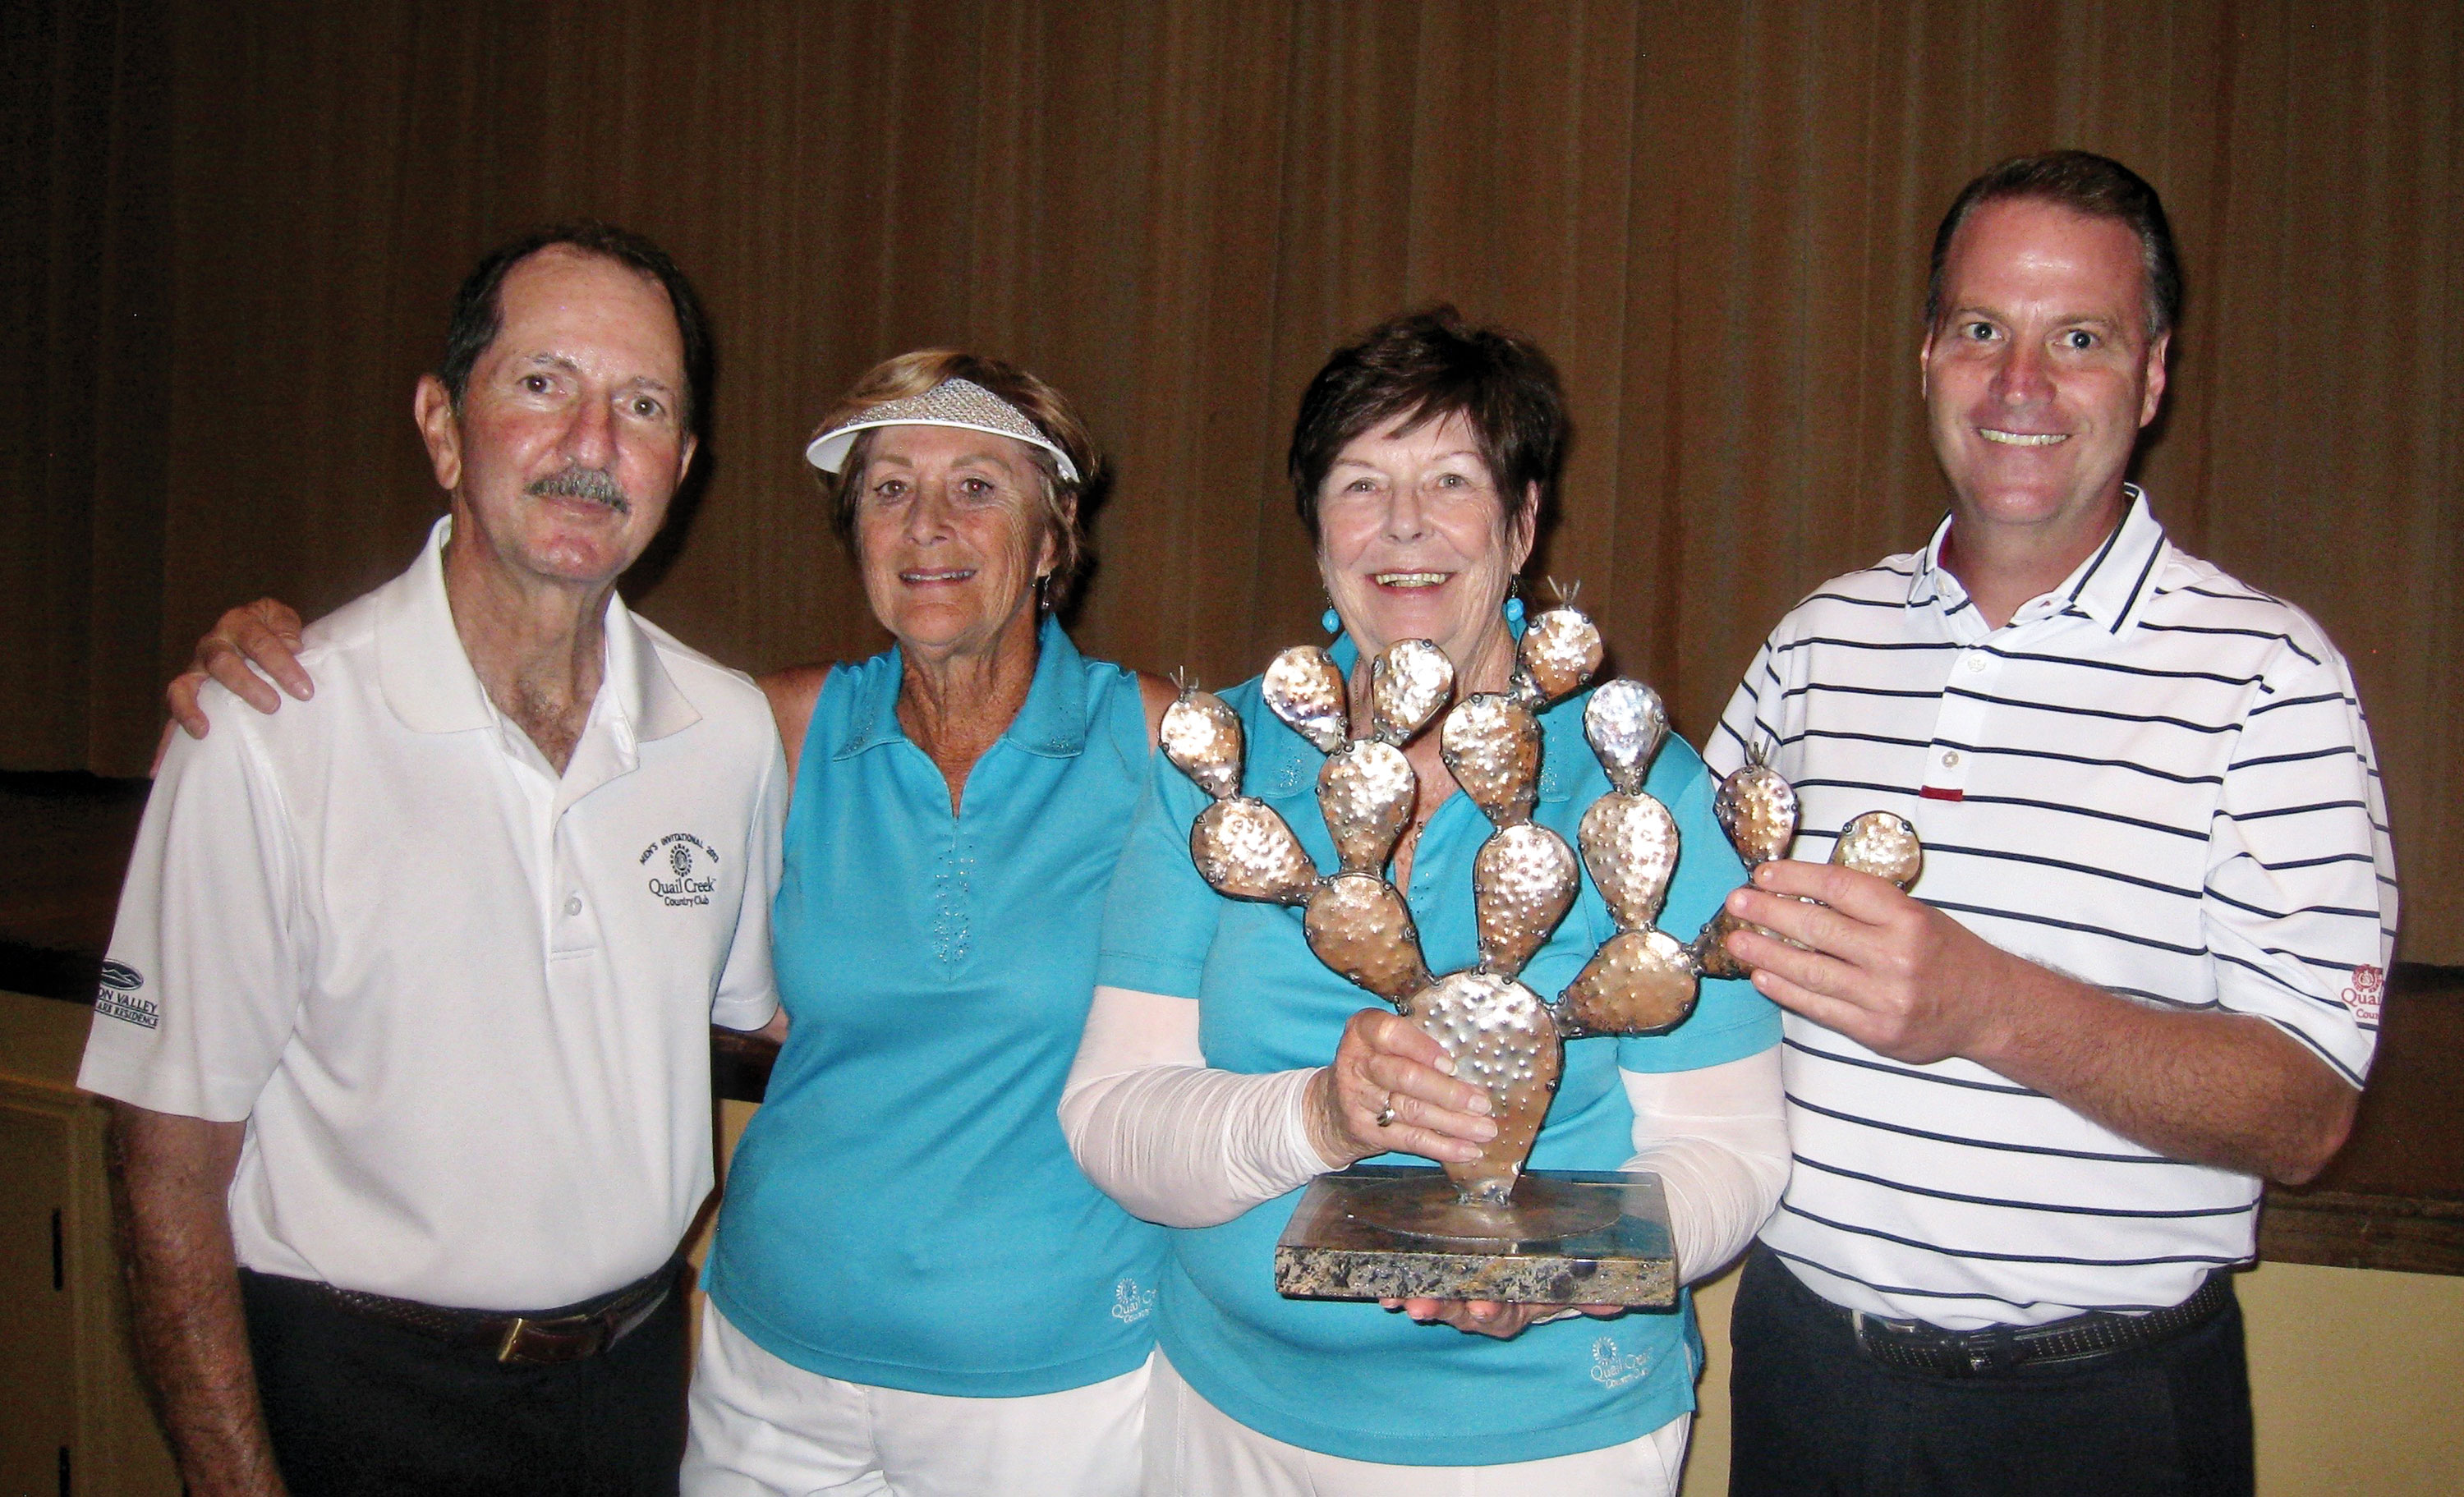 Skip Fumia, Carol Clifford, Gail Phillips and Joel Jaress with the traveling Prickly Pair trophy